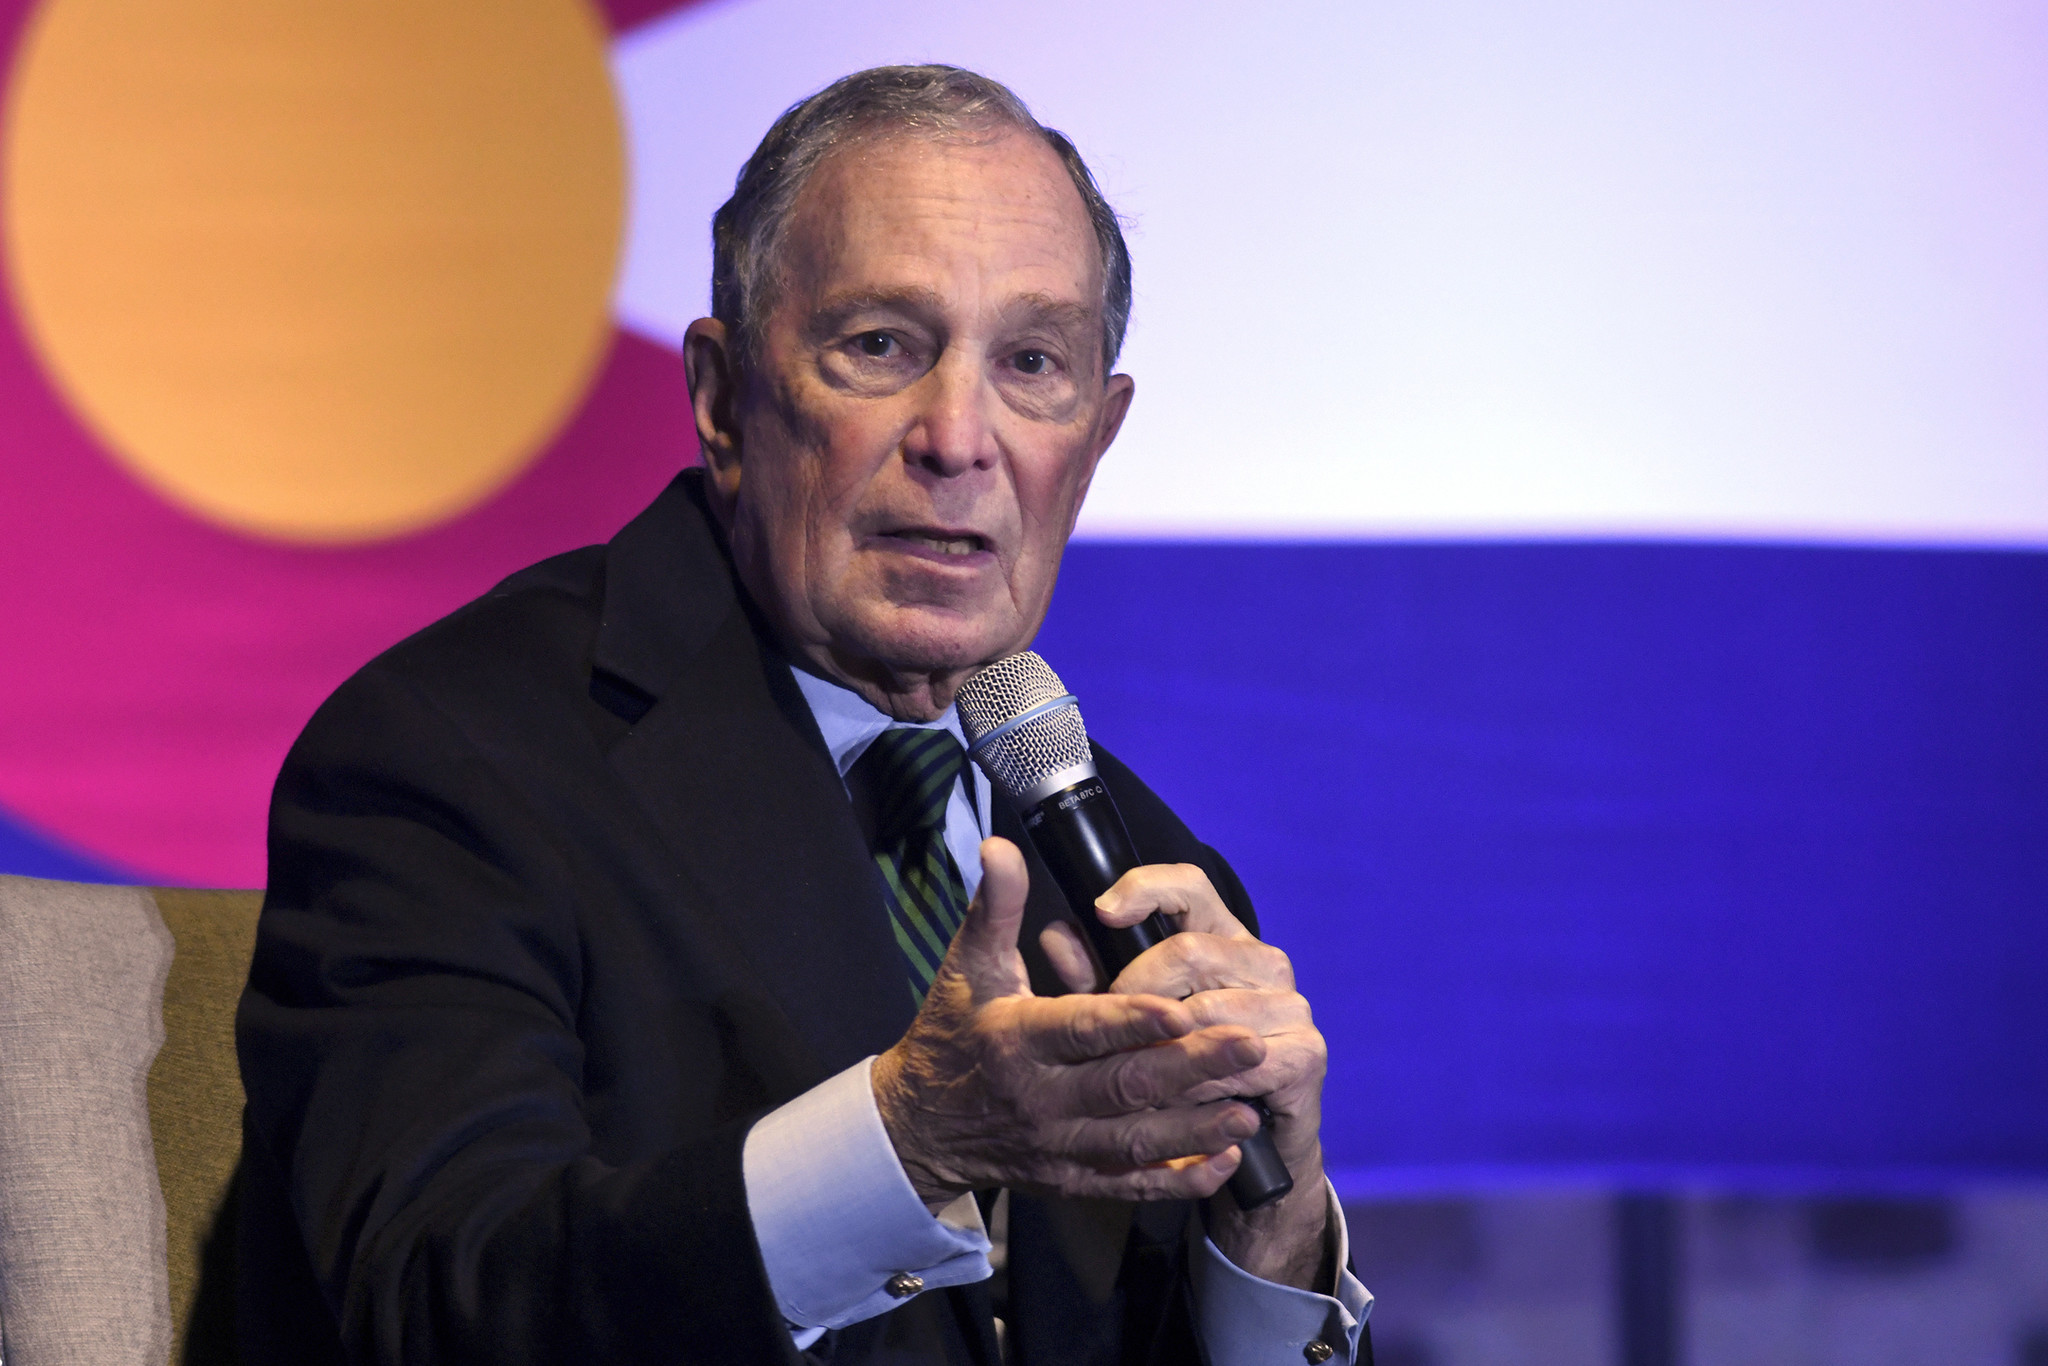 Where billions would be best spent: Bloomberg should invest in getting out the vote for Democrats